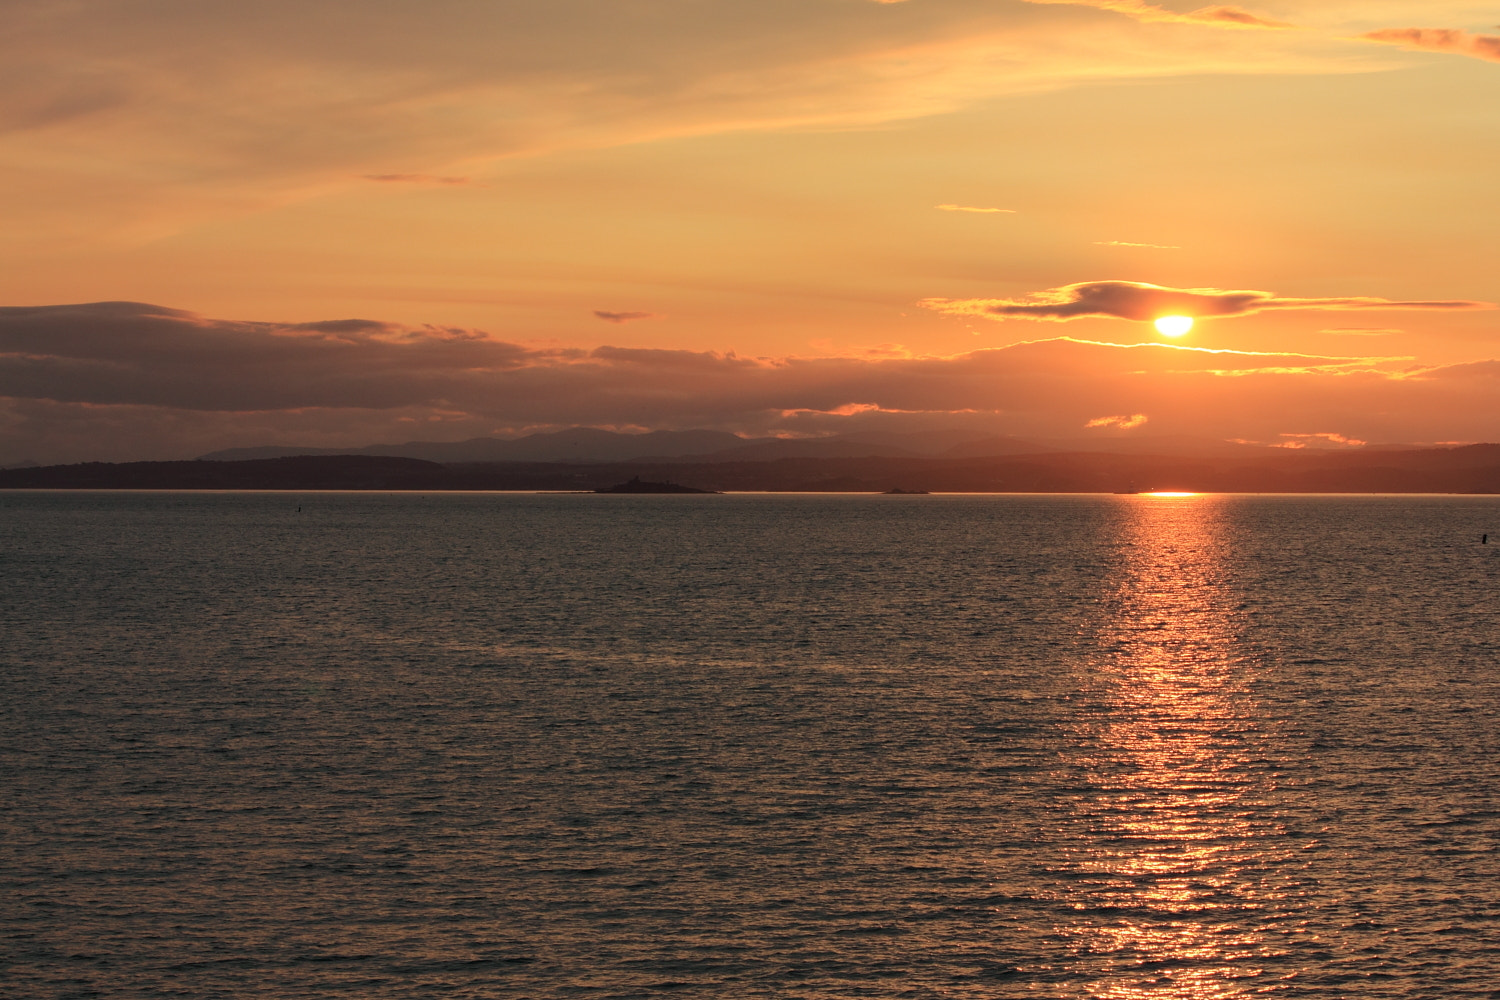 Photograph Across the Forth to Fife by Carol  Gentle on 500px